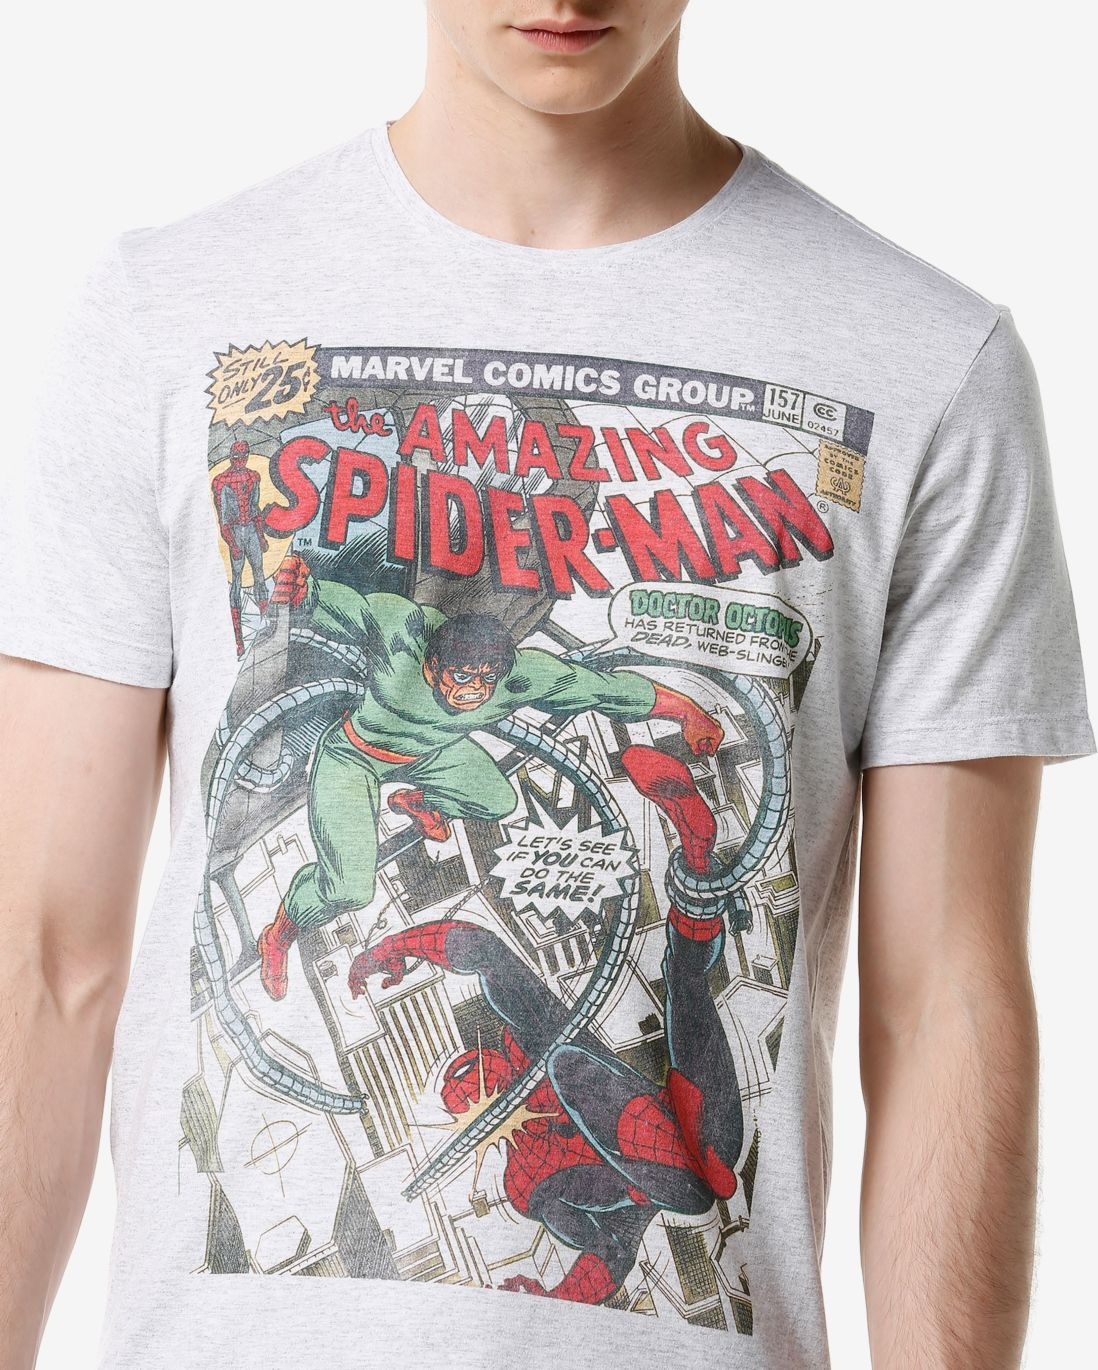 0a008e4f72 Camiseta Quadrinhos Marvel Comics | Riachuelo - Men's Fashion | Mens ...